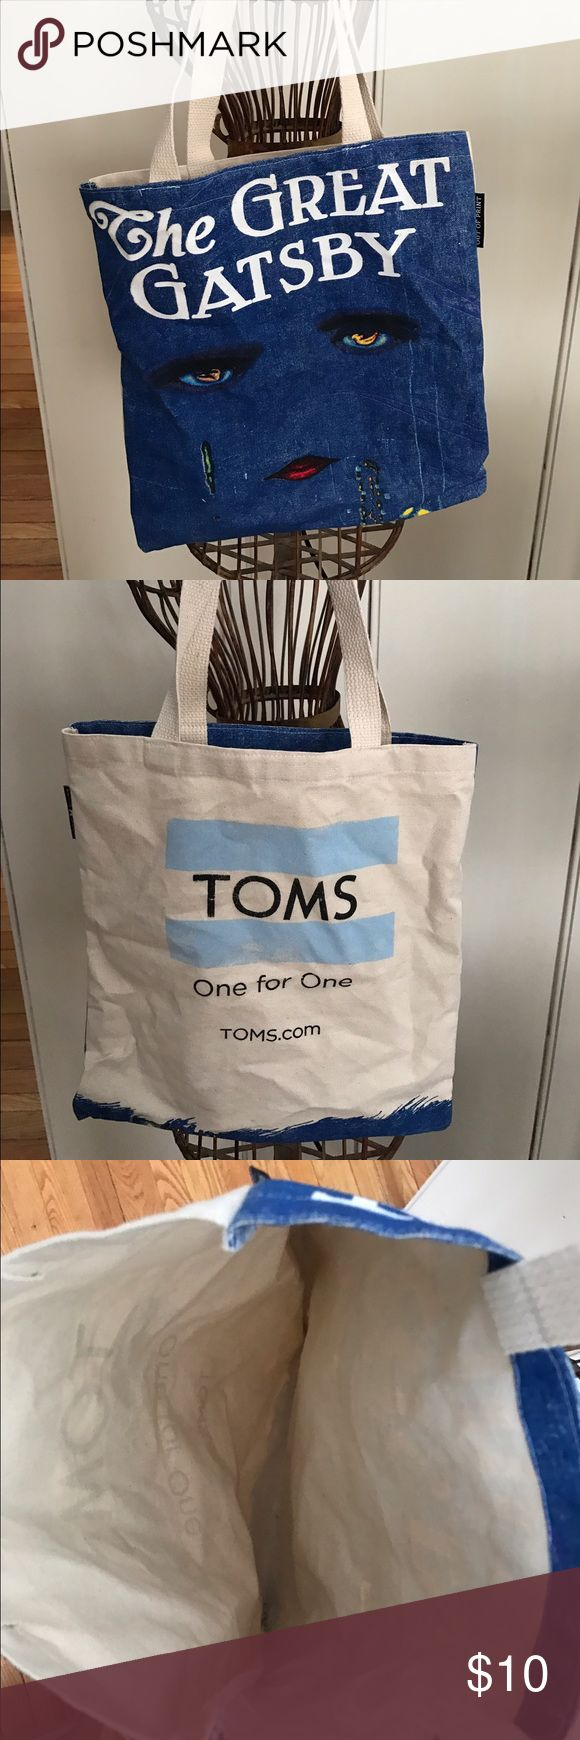 "Limited Toms reusable bag ""The Great Gatsby"" Reusable bag from Toms with the original The Great Gatsby cover. Excellent bag perfect for on the go! TOMS Bags Shoulder Bags"